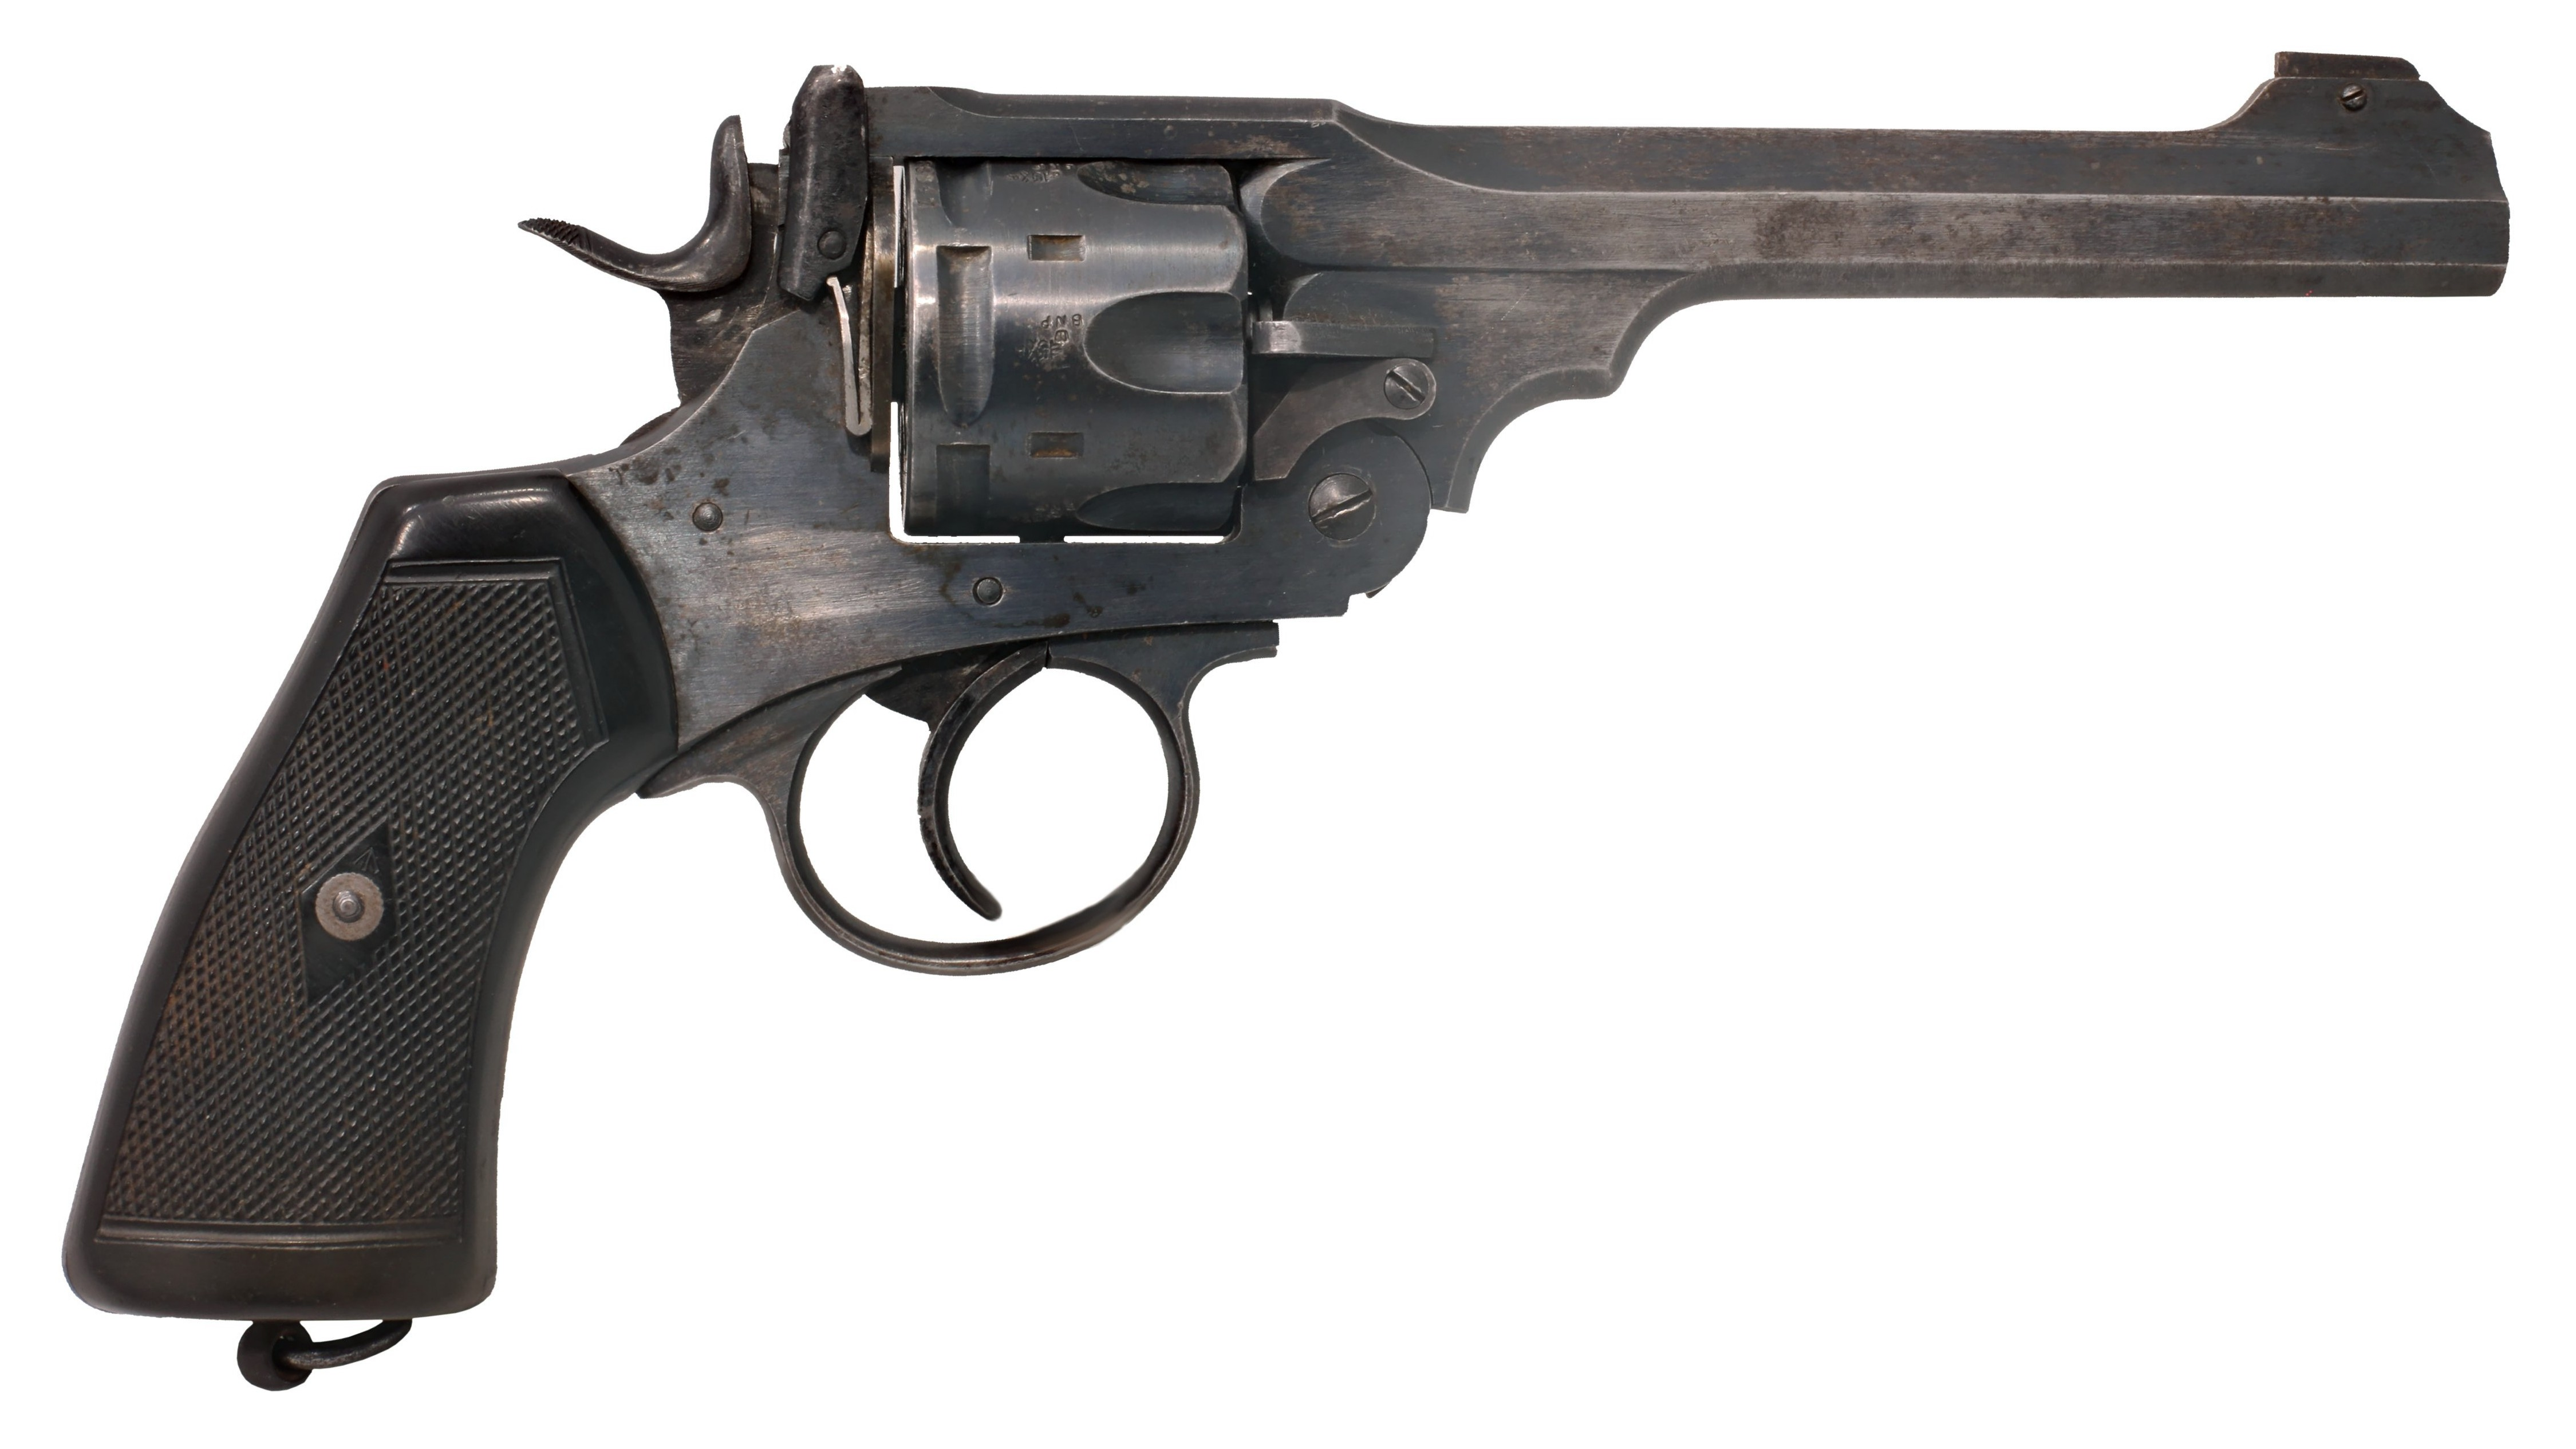 File:Webley IMG 6789.jpg - Wikipedia, the free encyclopedia